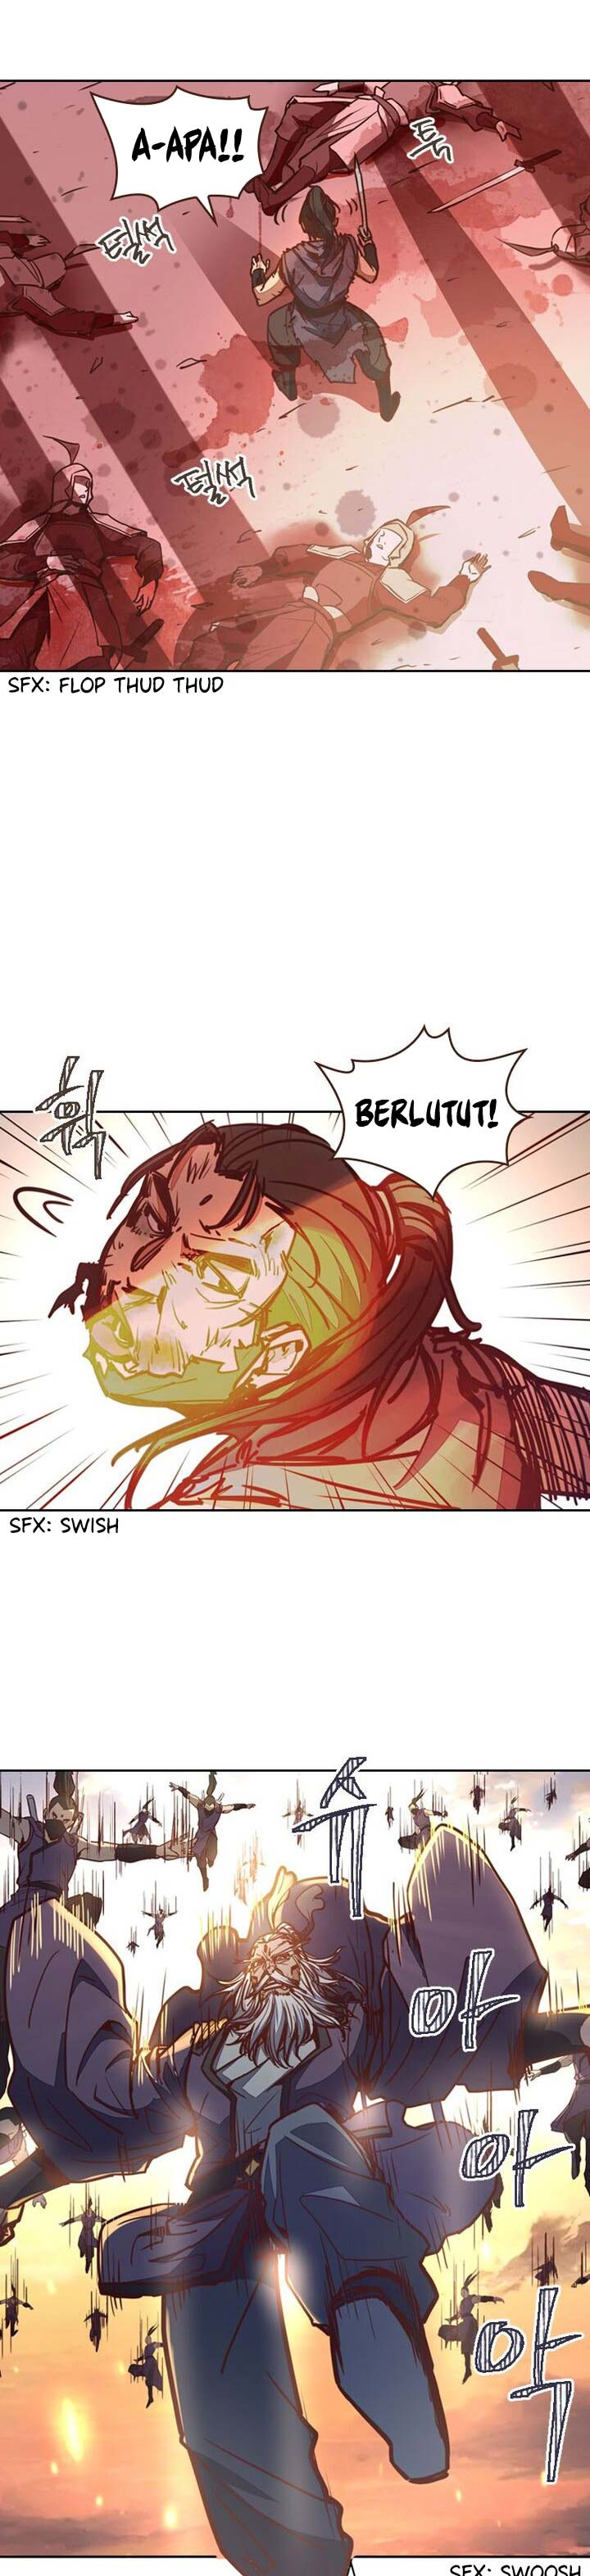 Life and Death: The Awakening Chapter 13 Bahasa Indonesia